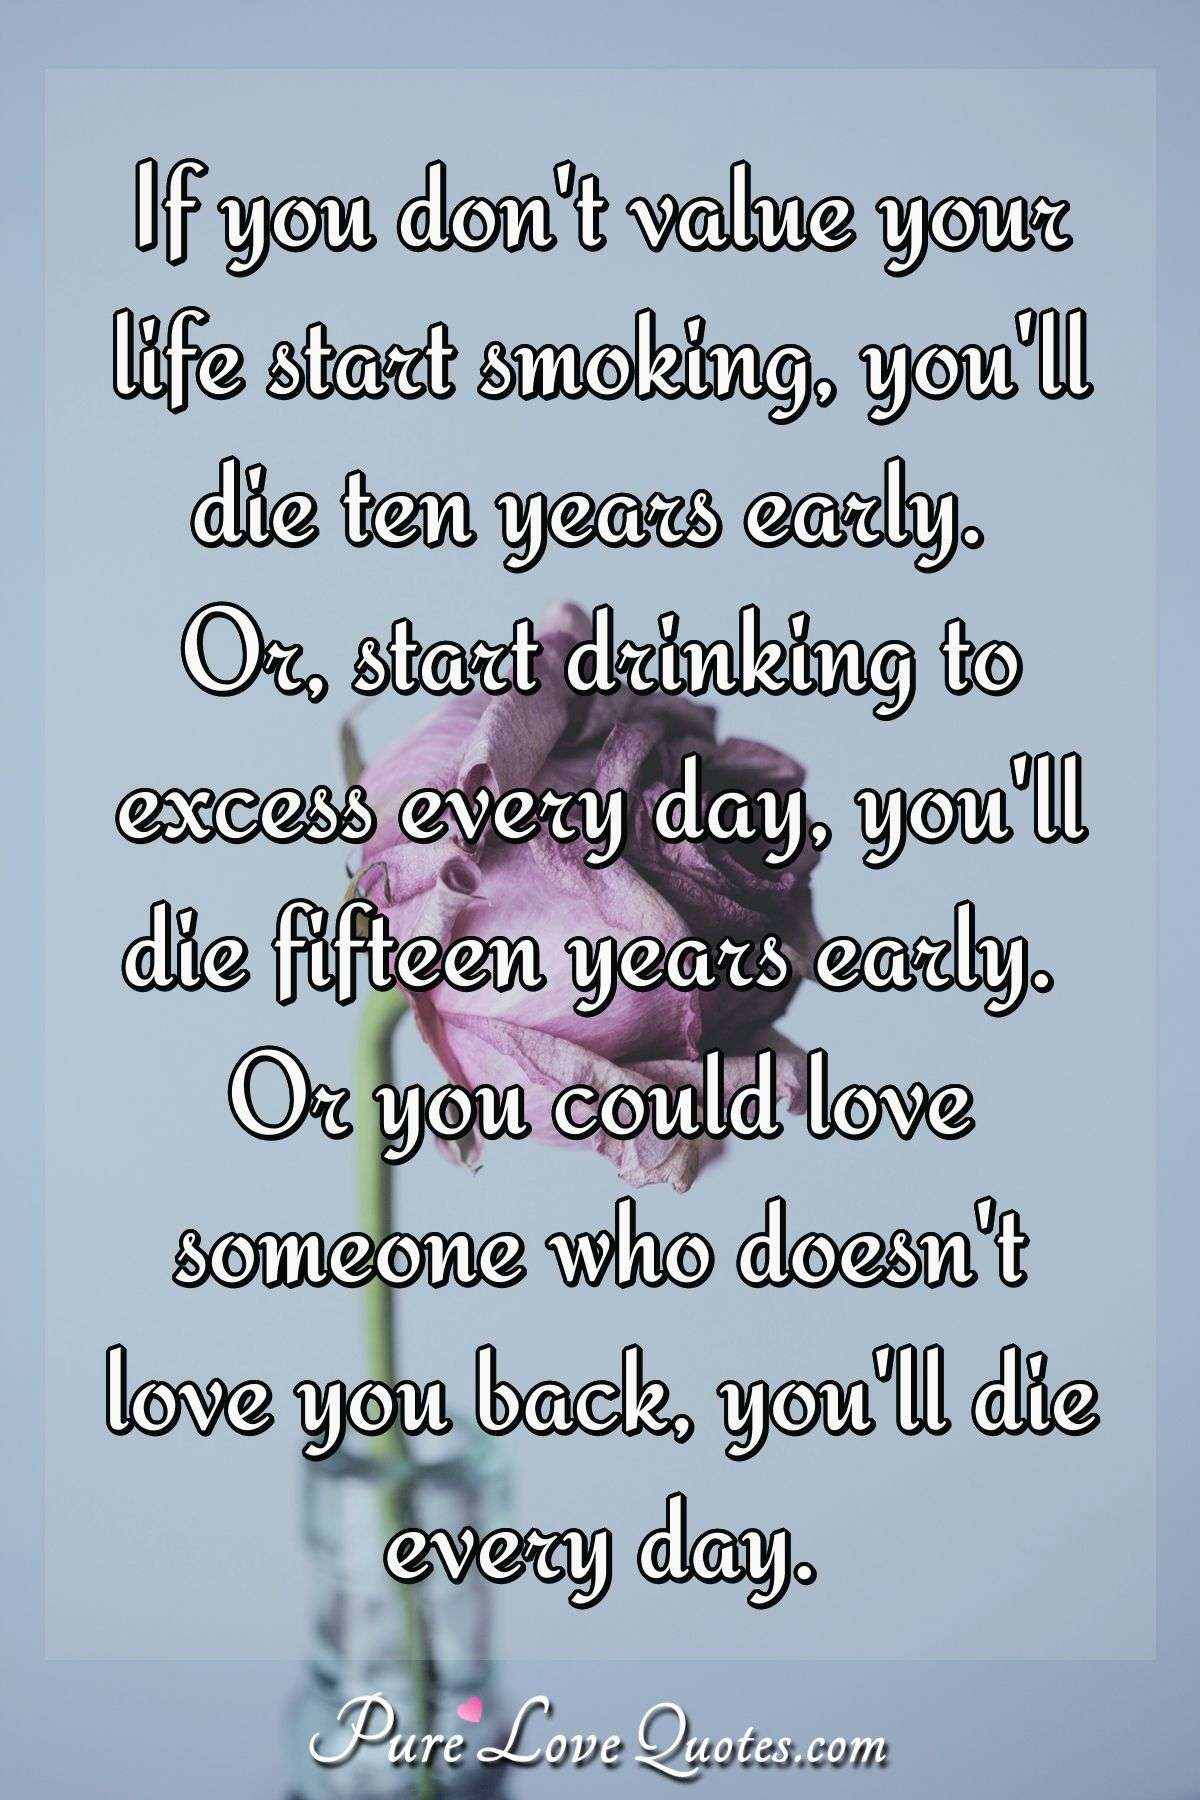 If You Don T Value Your Life Start Smoking You Ll Die Ten Years Early Or Purelovequotes